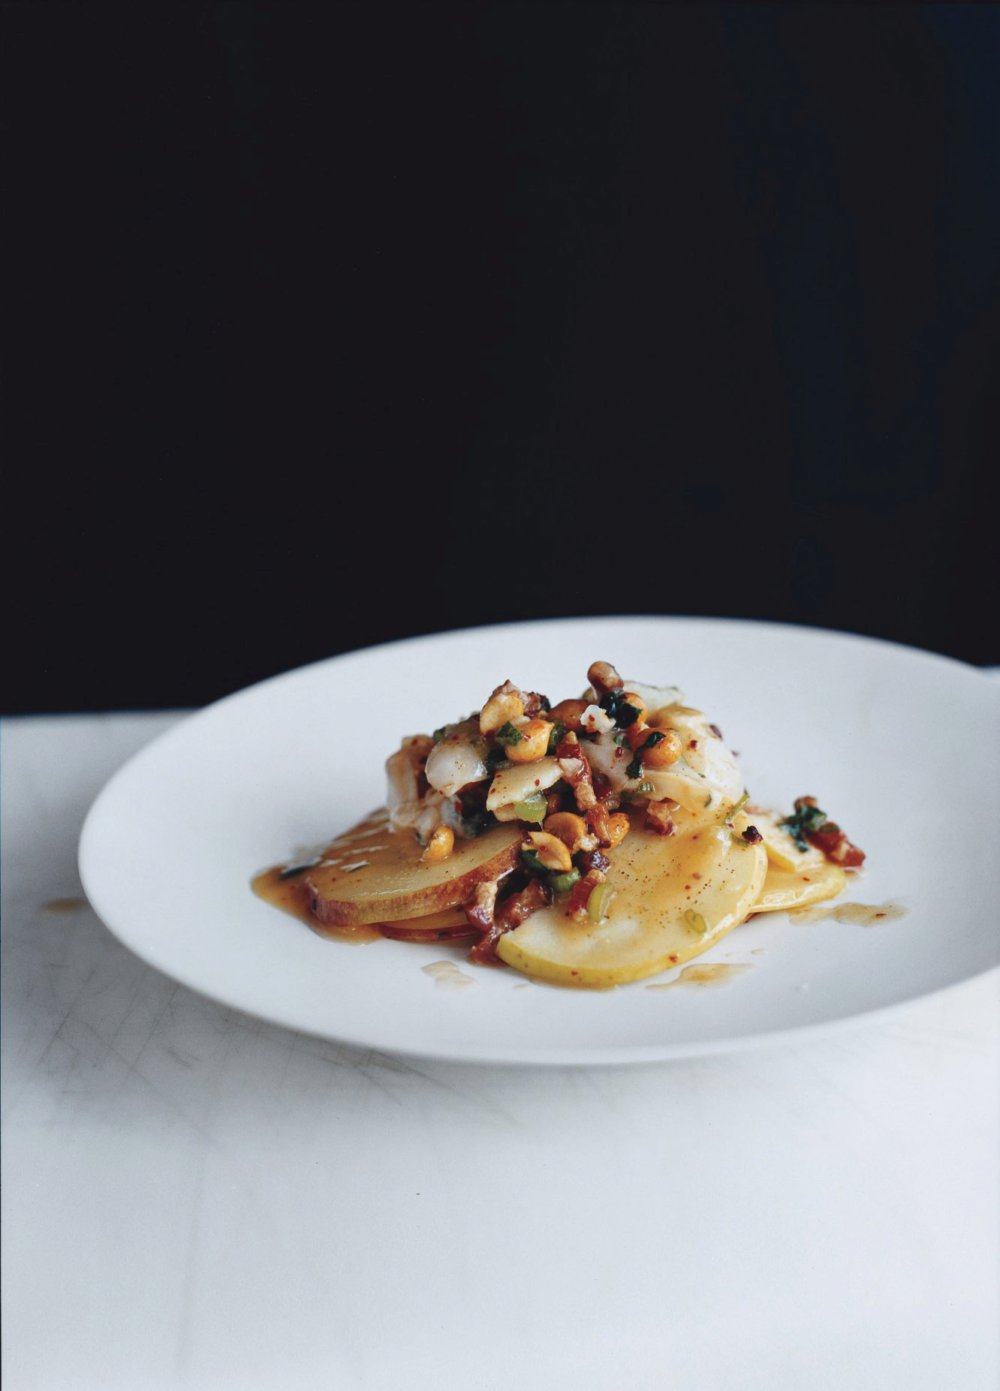 Apple and Smoked-Bacon Salad with Lychees and Chili Nuts